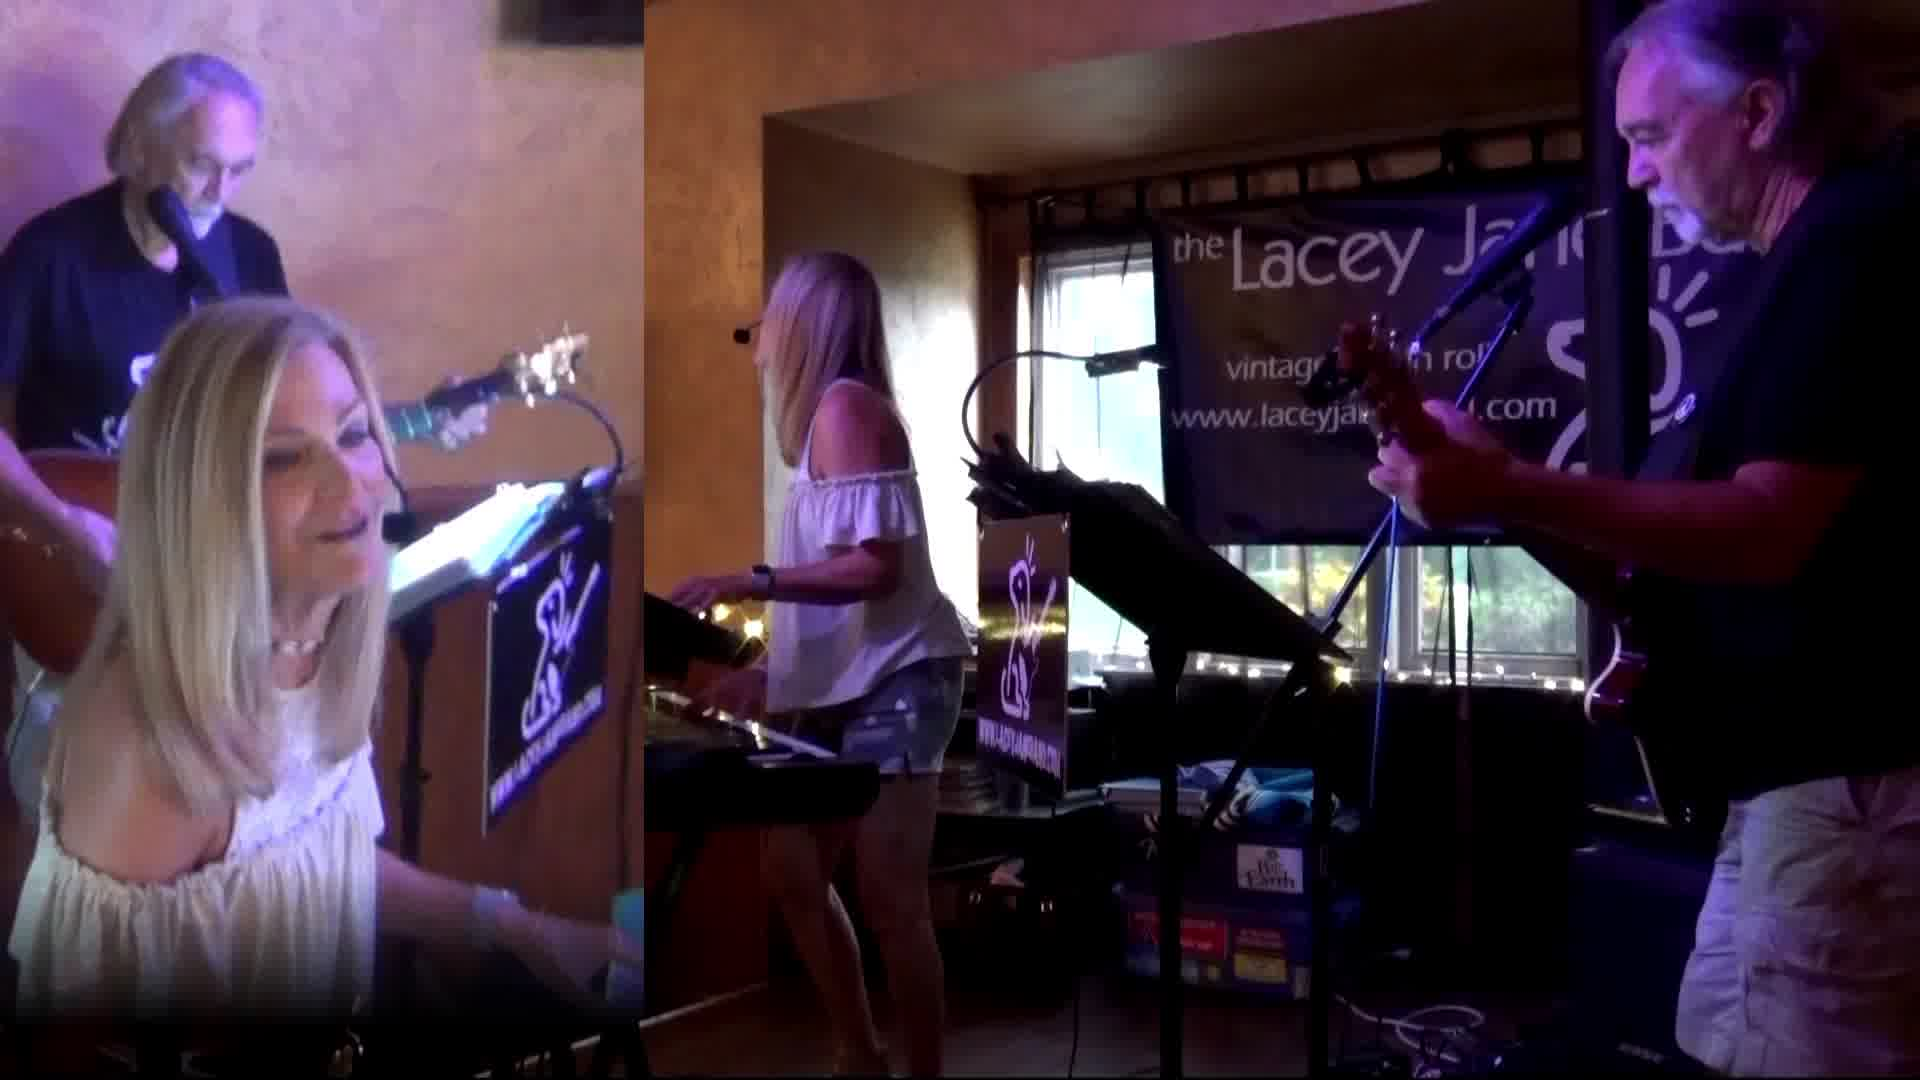 Beth Hill/Lacey Jane Band